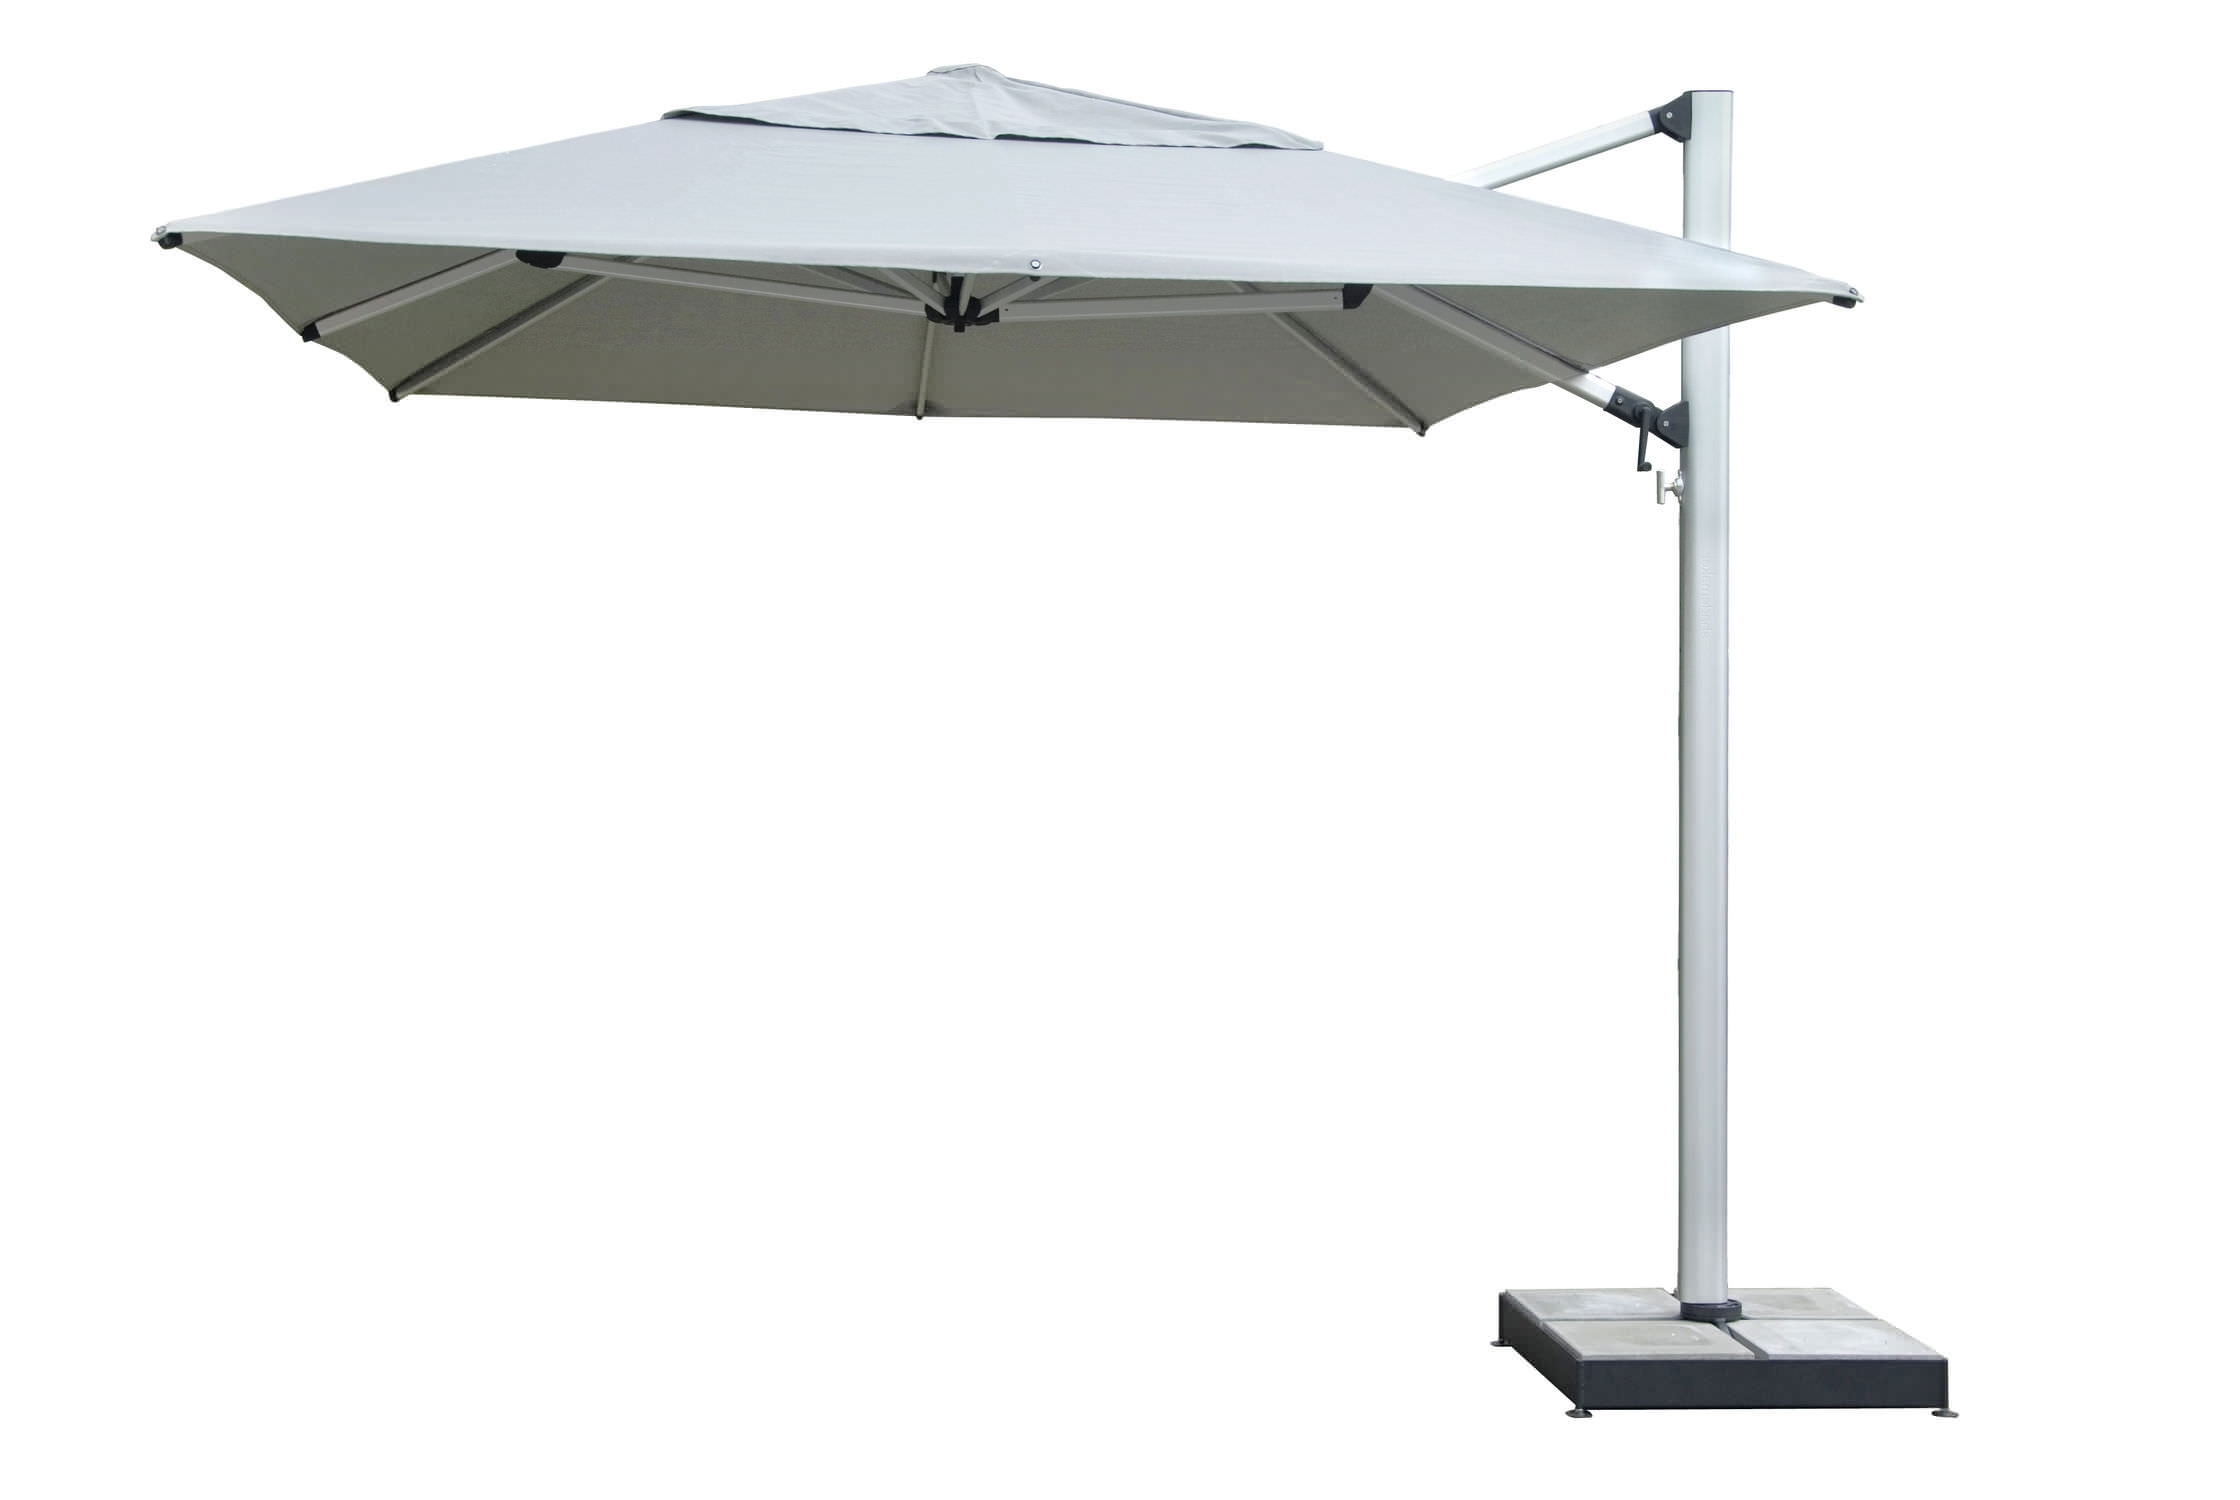 2018 White Patio Umbrellas Within Furniture: Stainless Steel Patio Umbrella Patio Furniture And (View 1 of 20)